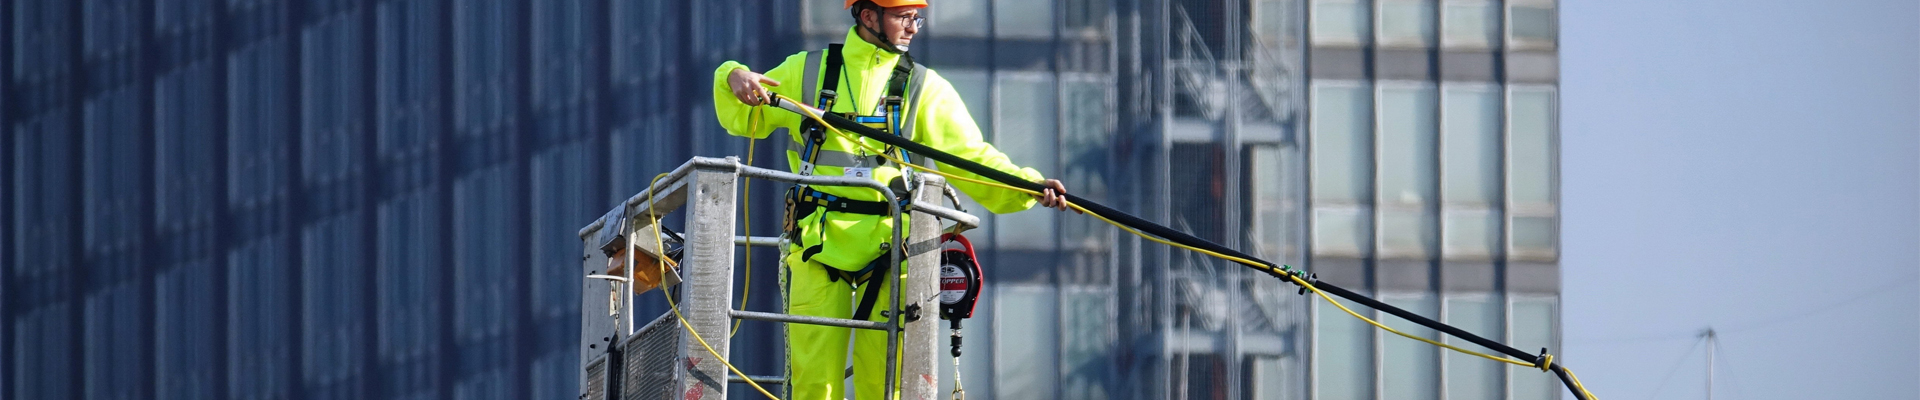 High Pressure and Steam Cleaning Services